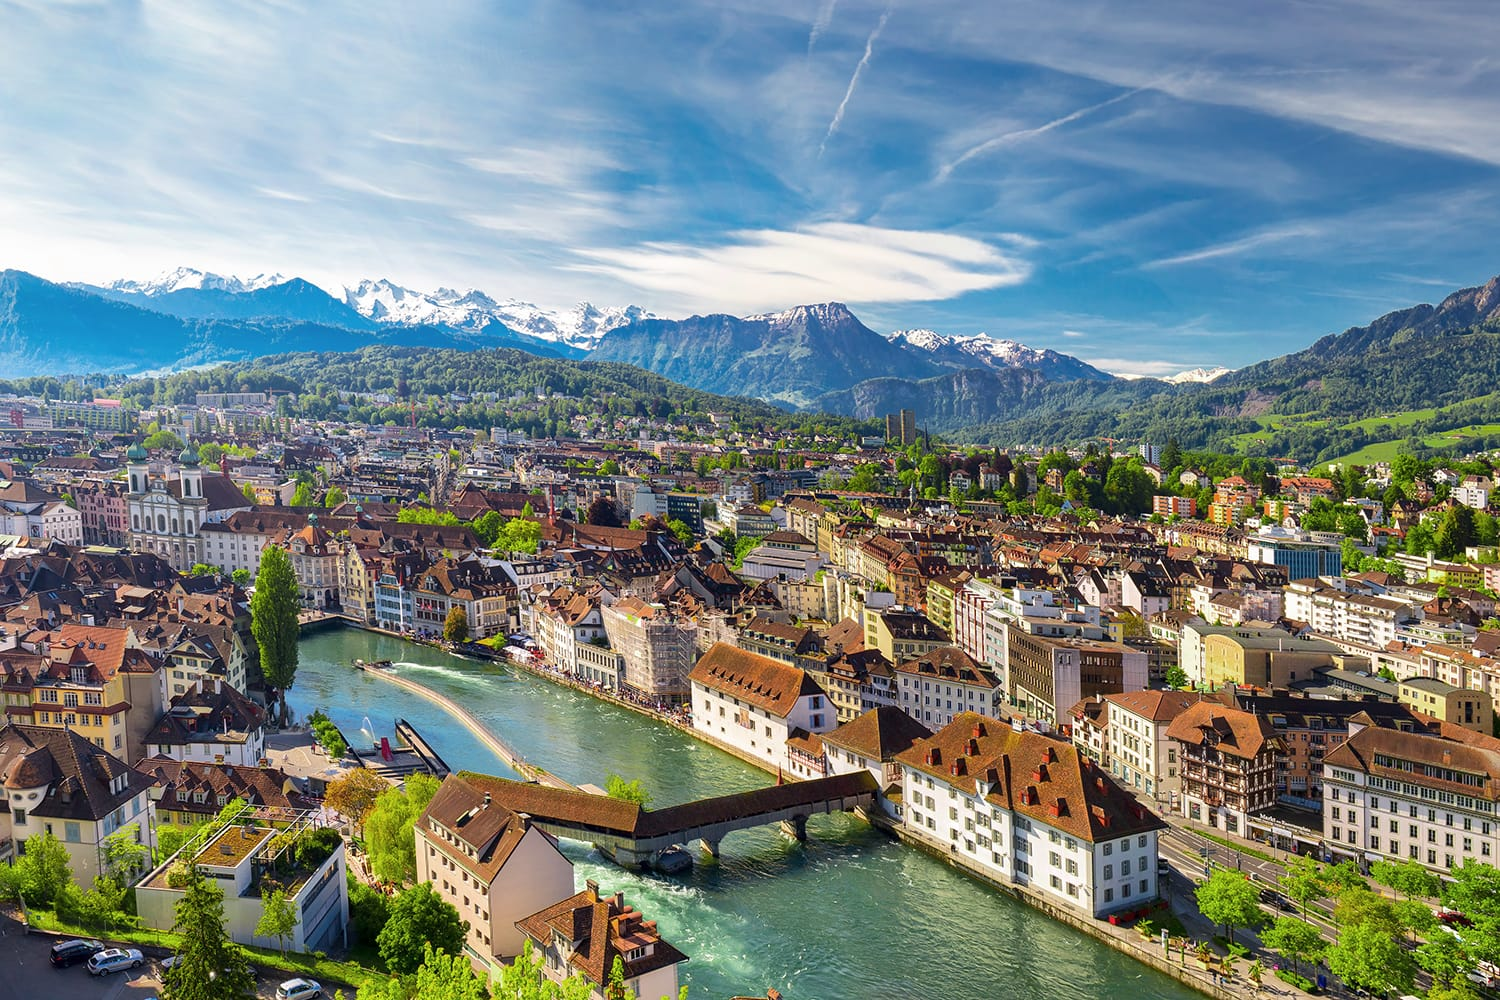 Aerial view of historic city center of Lucerne with famous Chapel Bridge and lake Lucerne (Vierwaldstattersee), Canton of Luzern, Switzerland